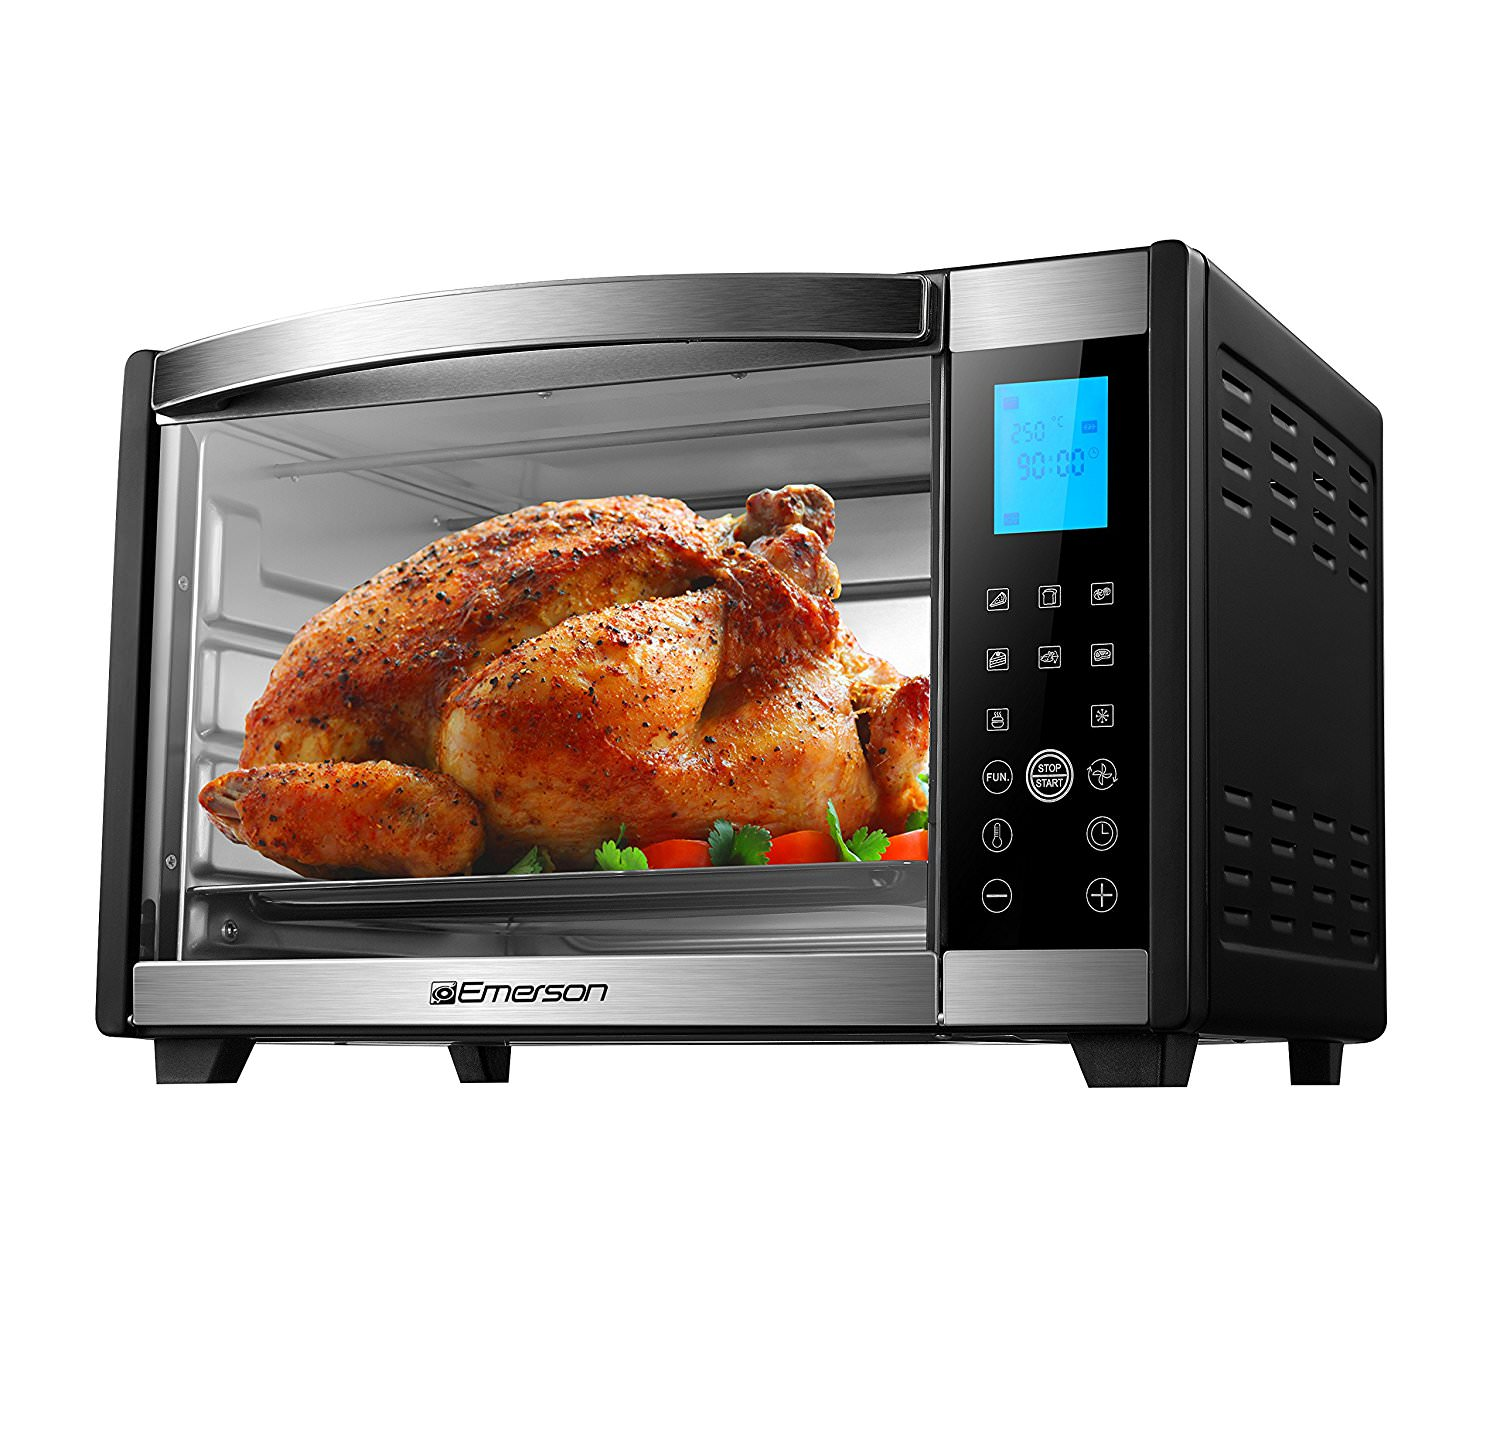 Emerson 6-Slice Convection & Rotisserie Countertop Toaster Oven with Digital Touch Control in Stainless Steel